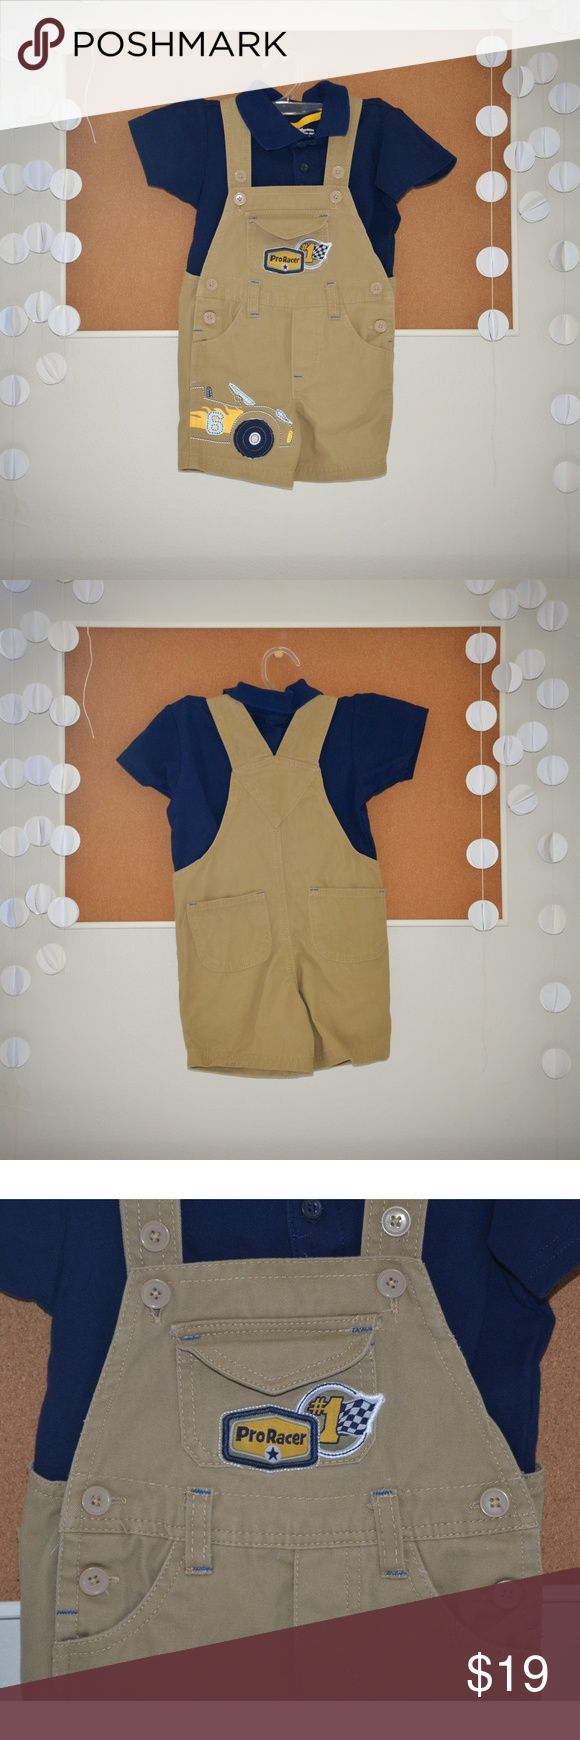 "Beige Boy's ""Pro Racer"" Overalls & Navy Polo Shirt Was washed after purchase but never used.  100% Cotton ""Pro Racer"" bib embroidery Items in Set: 2 piece sets Classic polo shirt included Shirt: Polo collar Button placket Short sleeves Overalls: Shoulder straps, button closure Hip buttons Faux fly Knit construction Shortall with cars screen print, belt loops, functional pockets  RN# 16435 RN 16435 LR95029/0108 1216 Description Item # 029VA72945512P  Model # 9CL4517 Made in Bangladesh MSRP…"